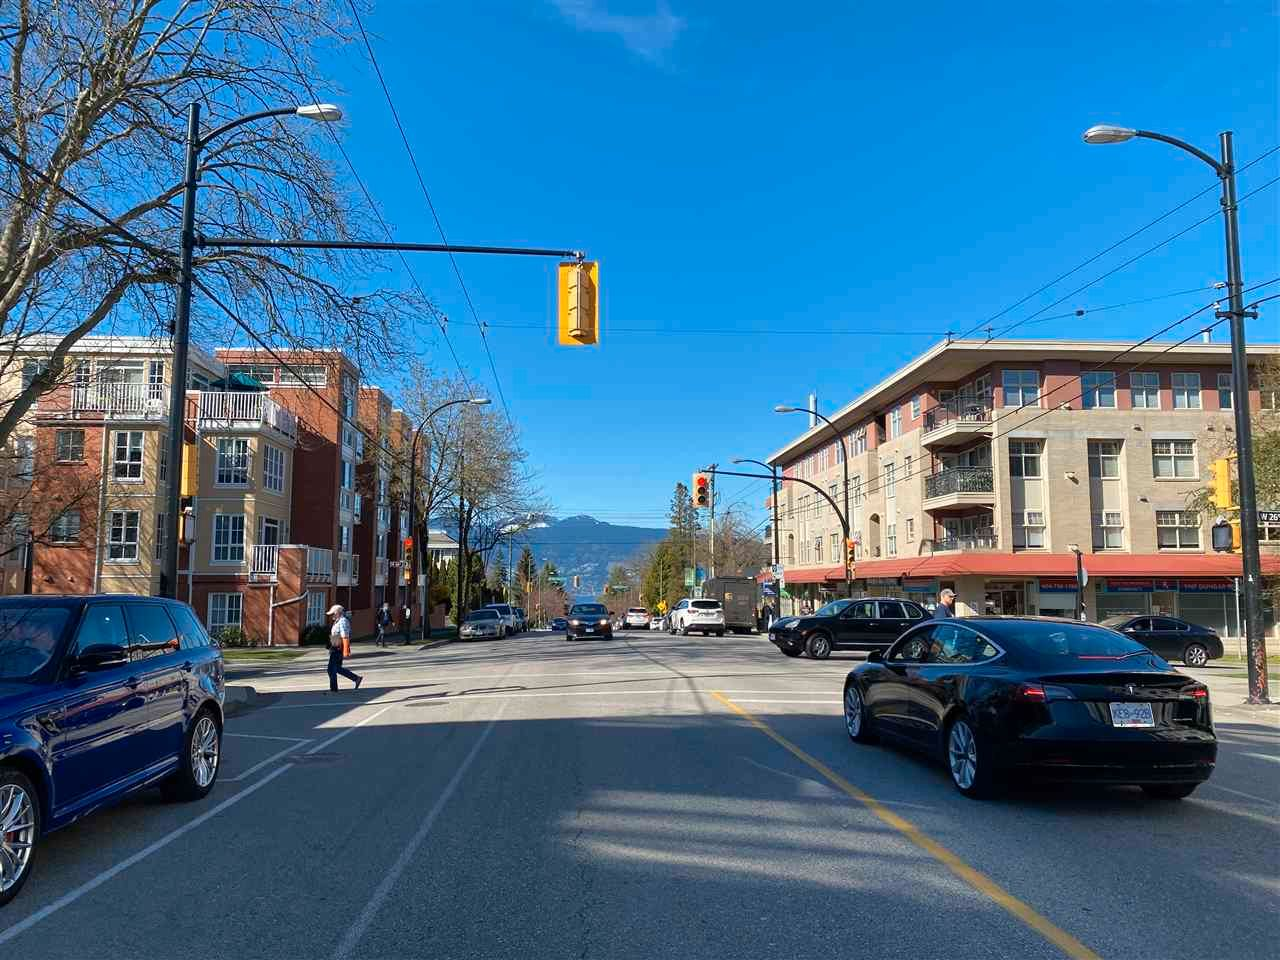 Main Photo: 9856 CONFIDENTIAL in Vancouver: Dunbar Retail for sale (Vancouver West)  : MLS®# C8037699